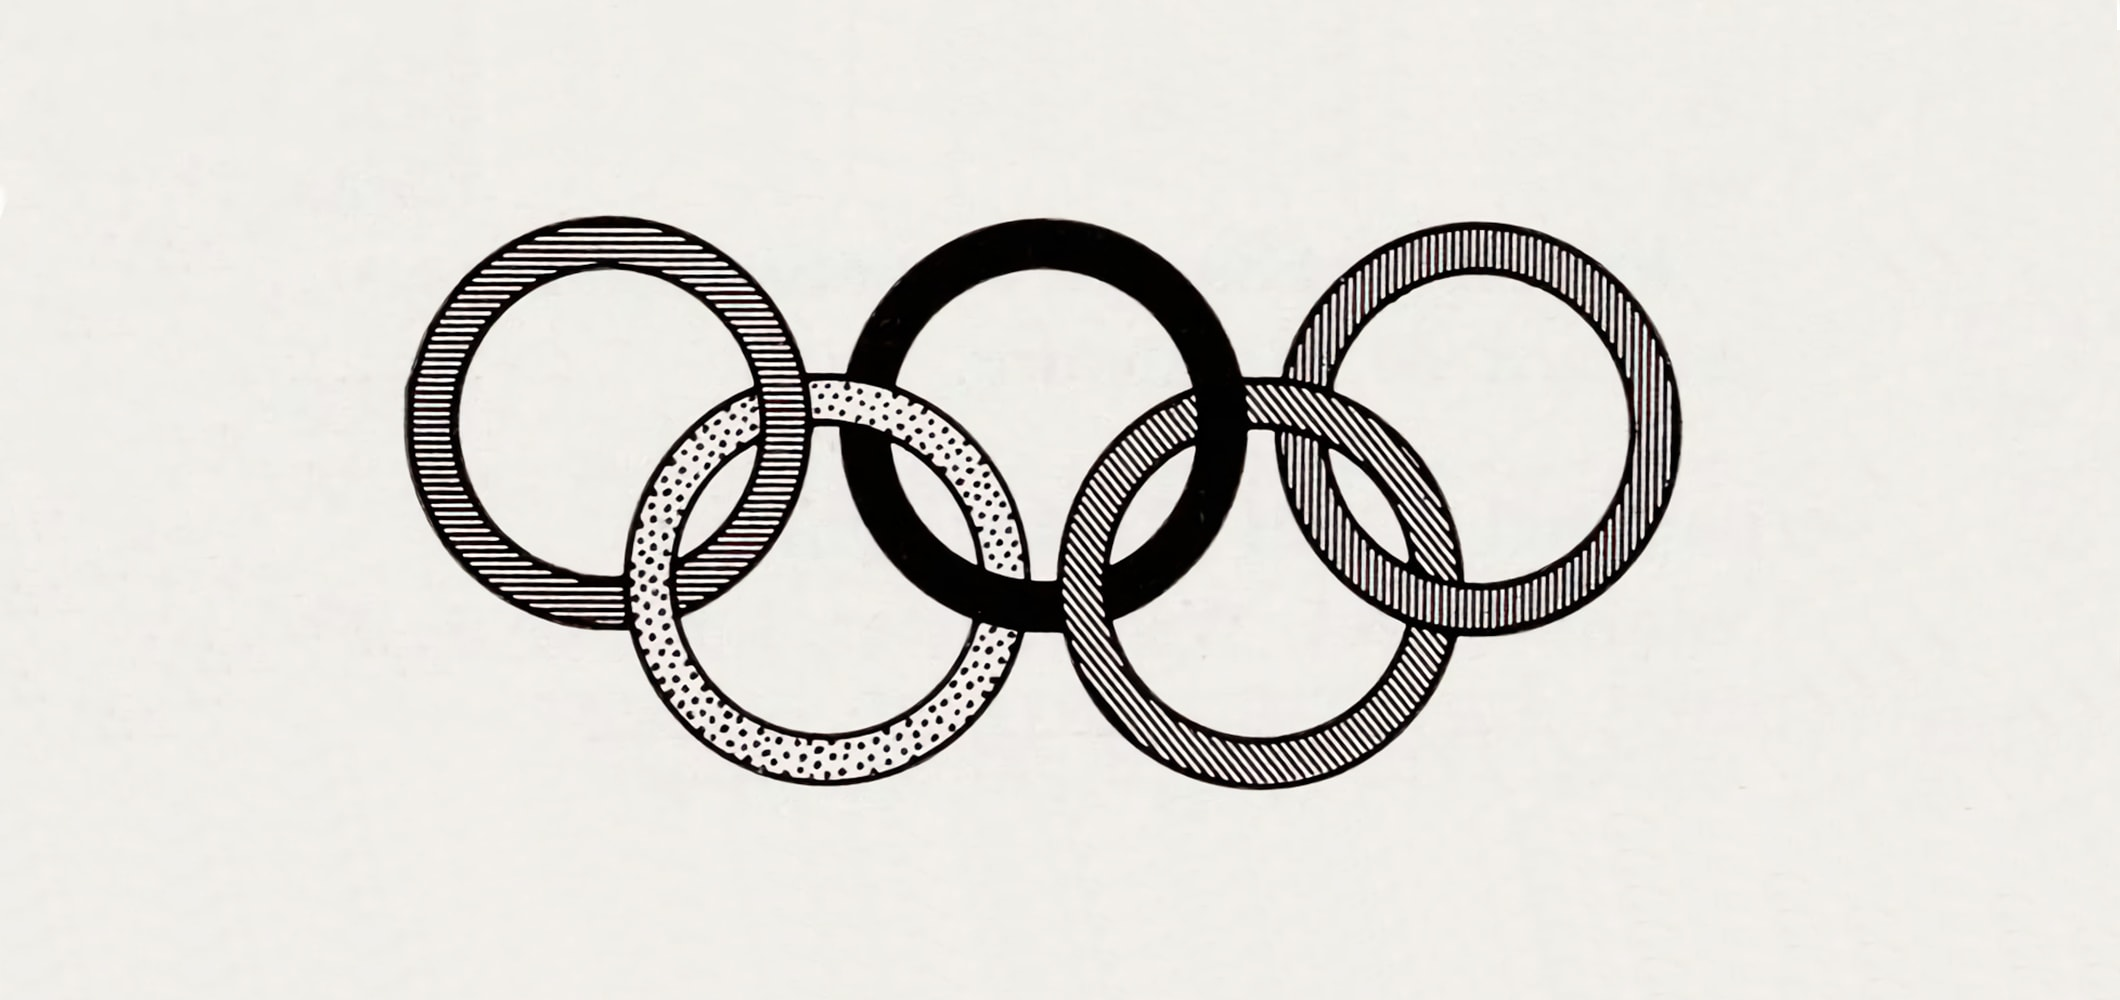 The Olympic Rings - 1957